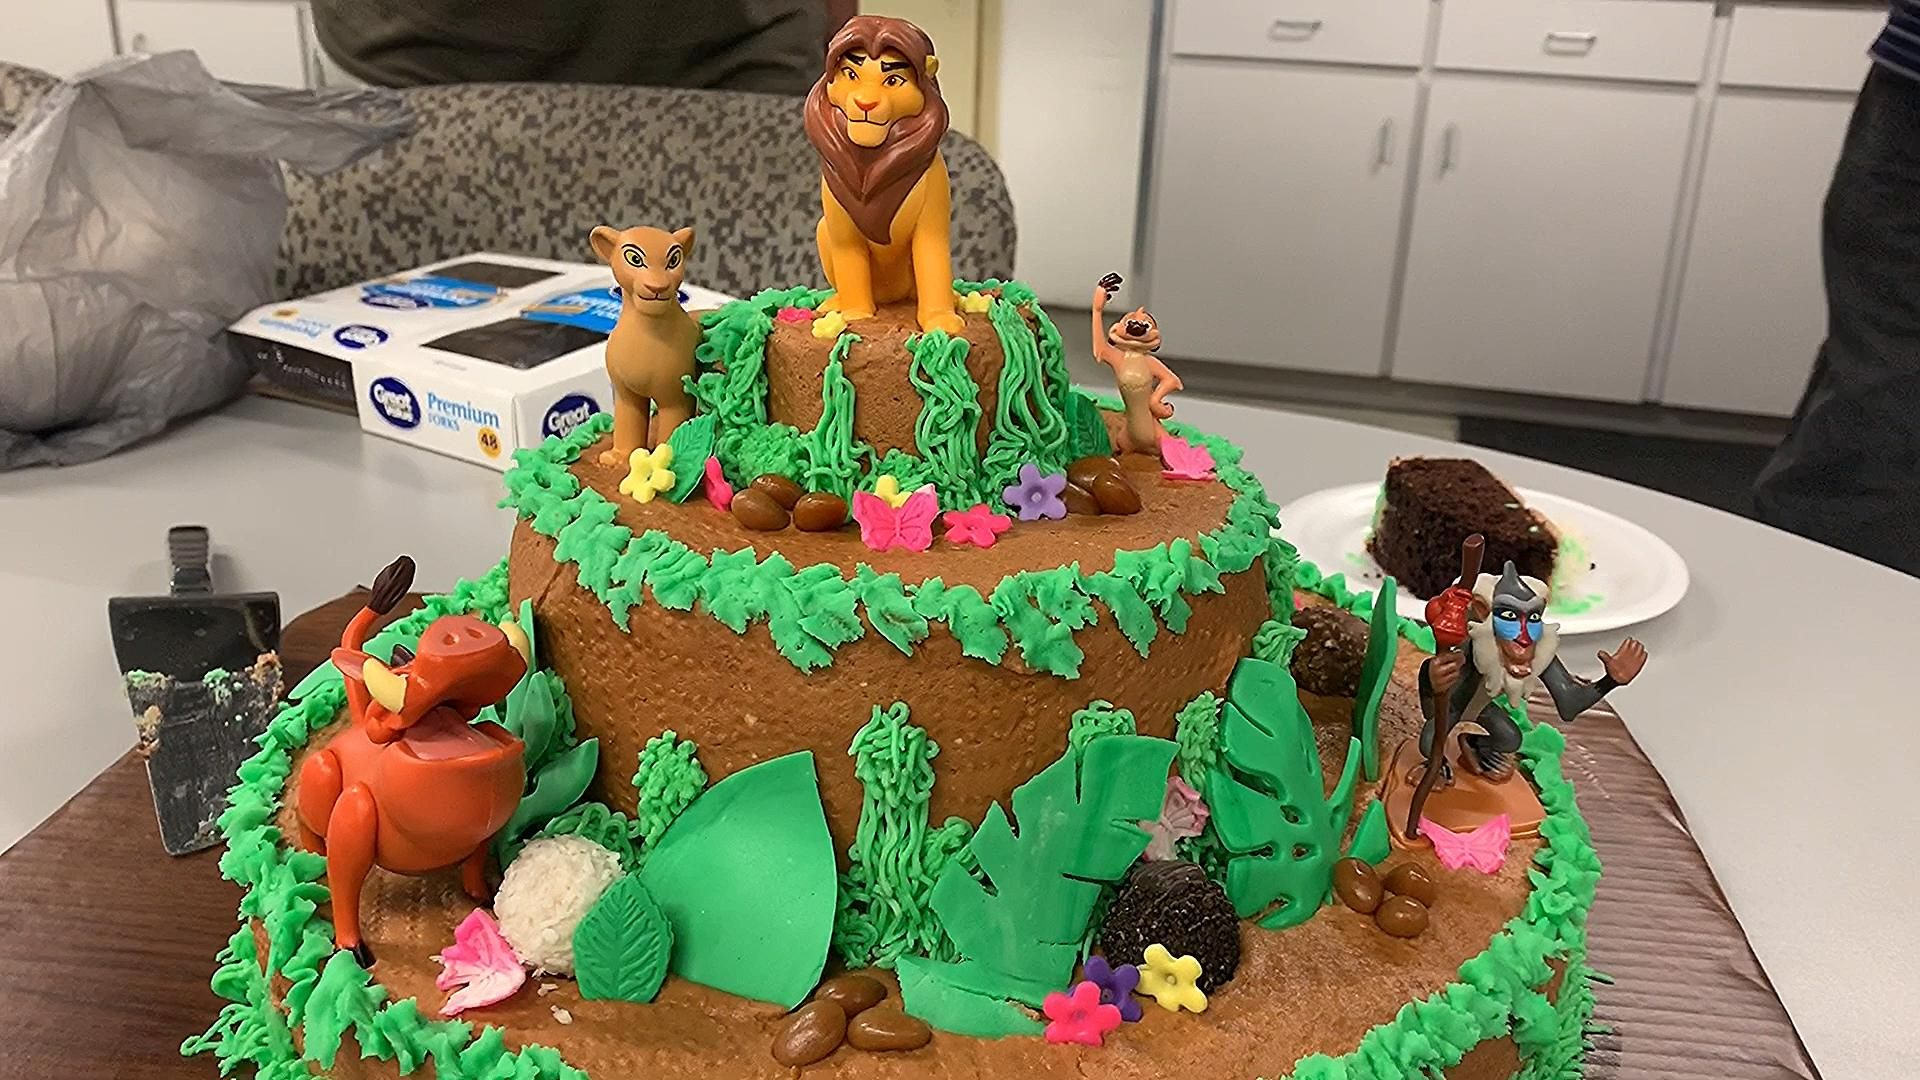 Happy friday check out this amazing cake we had at